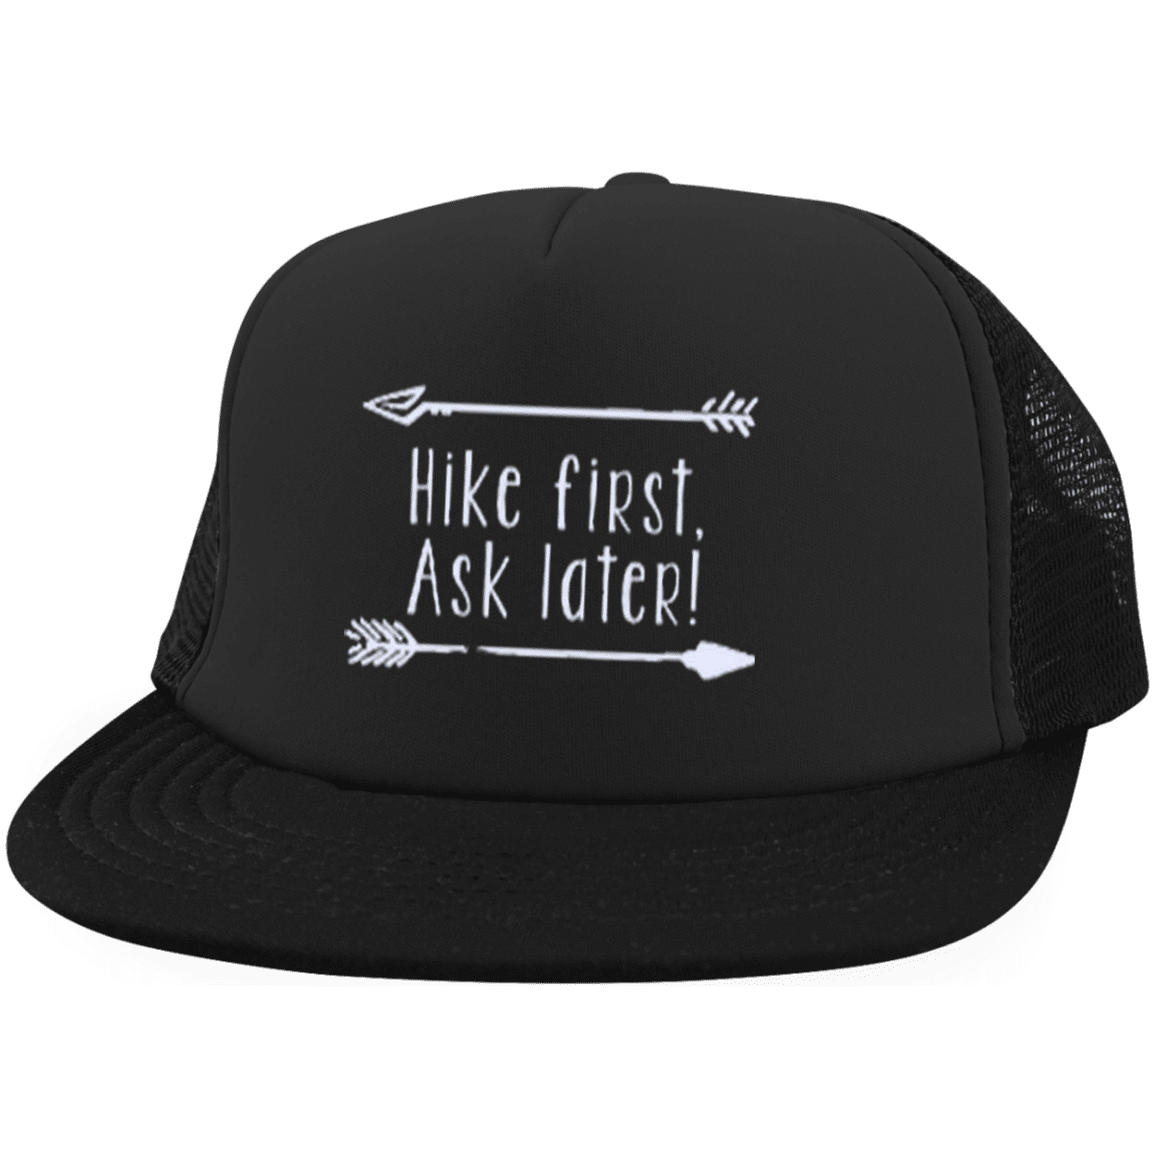 Hats Trucker Hat with Snapback / Black / One Size Hike First, Ask Later! Trucker Hat